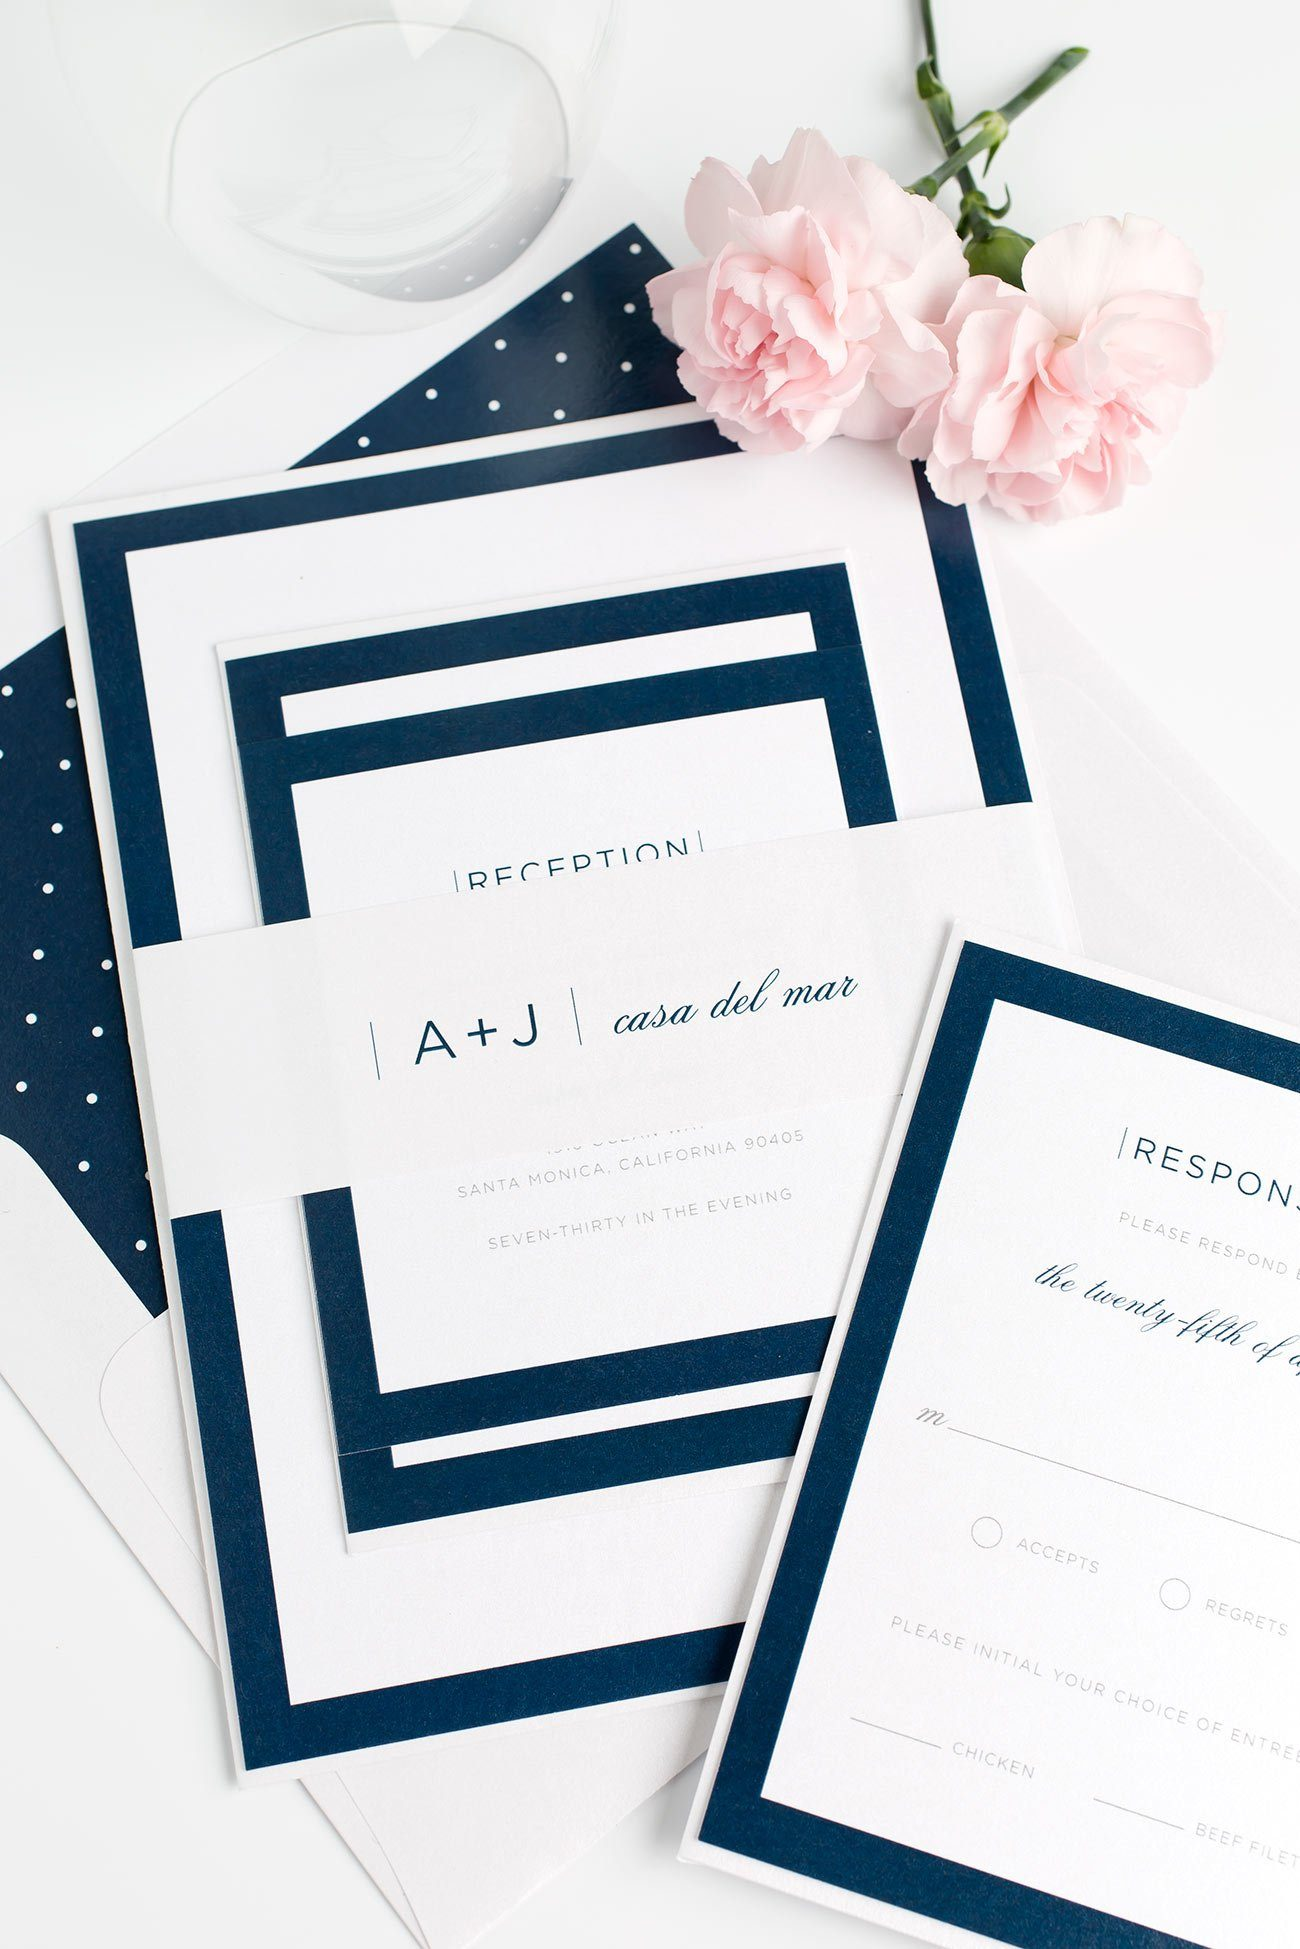 Modern Monogram Wedding Invitations in Navy Blue